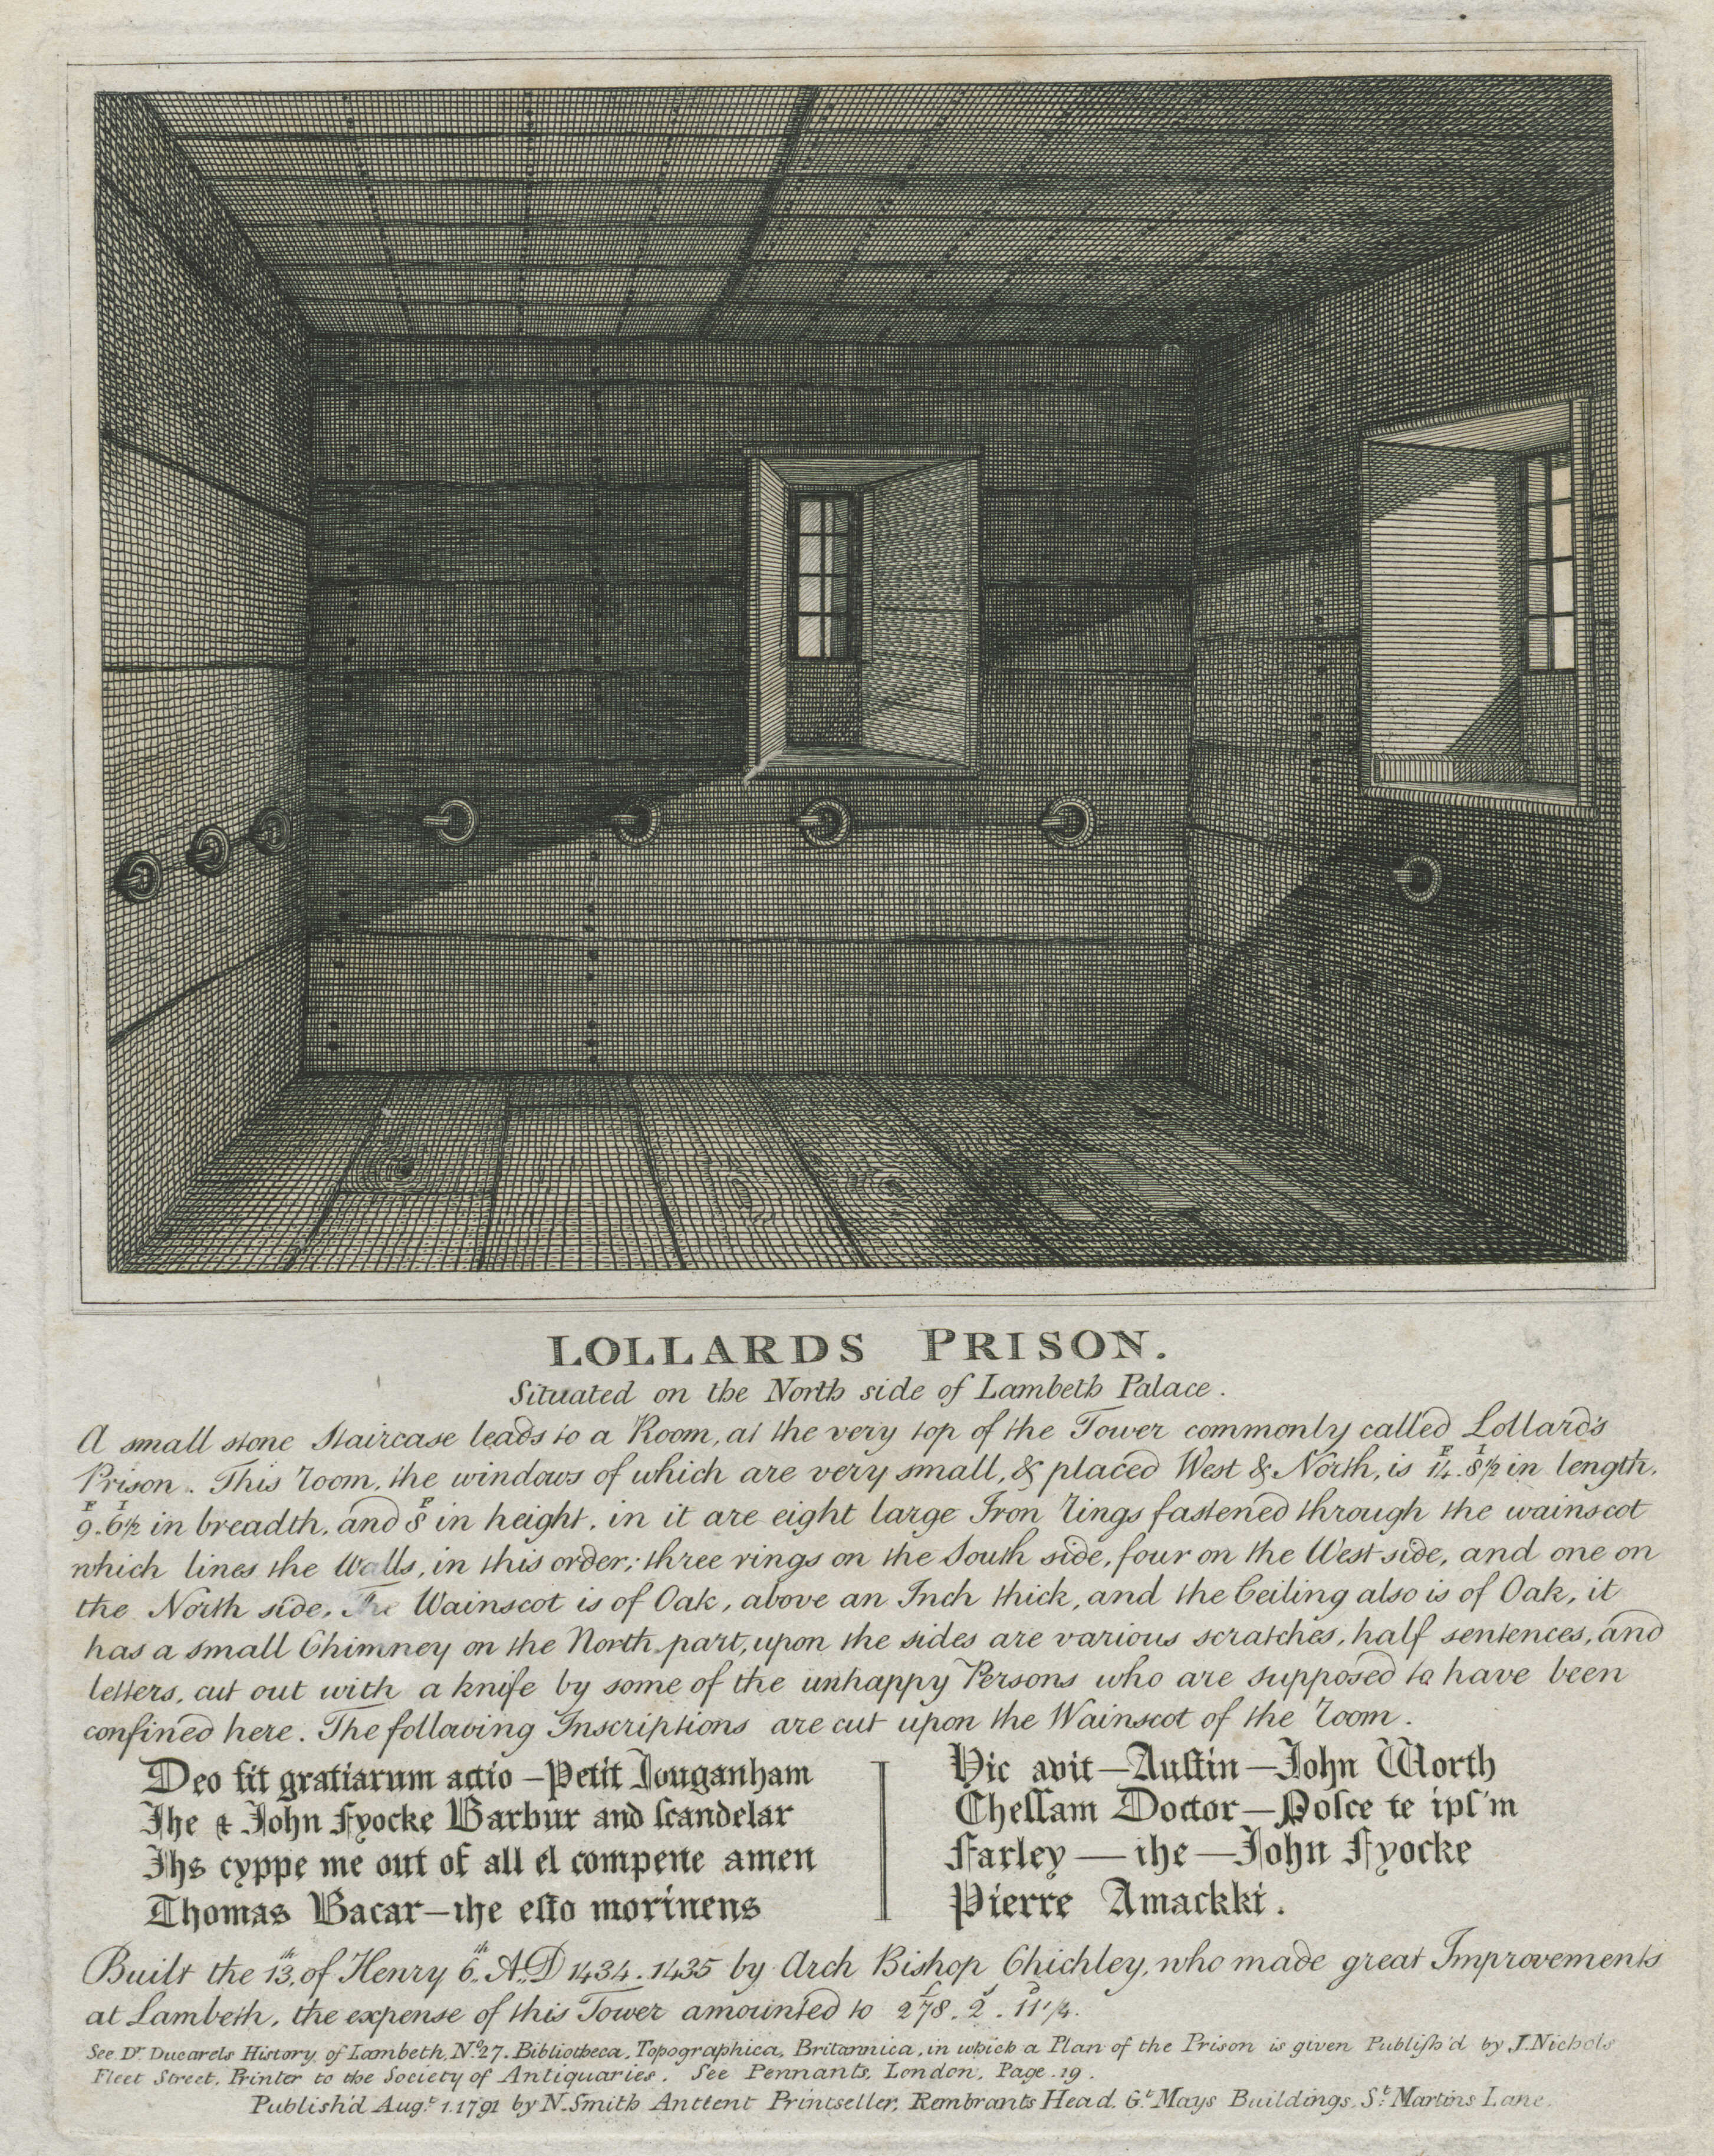 19-lollards-prison-situated-on-the-north-side-of-lambeth-palace